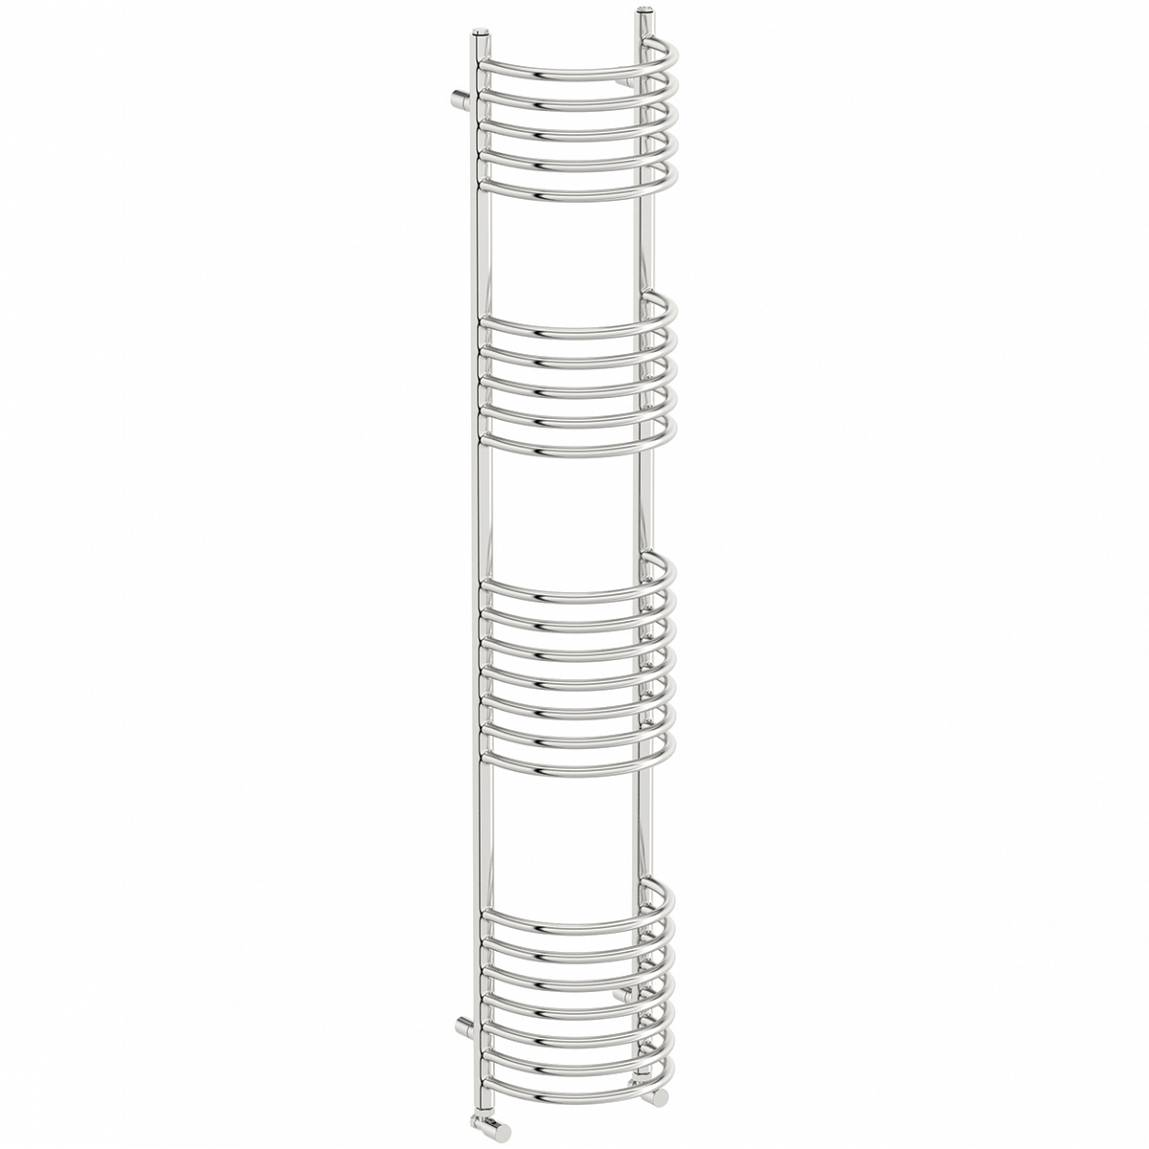 Image of Luna Heated Towel Rail 1635 x 320